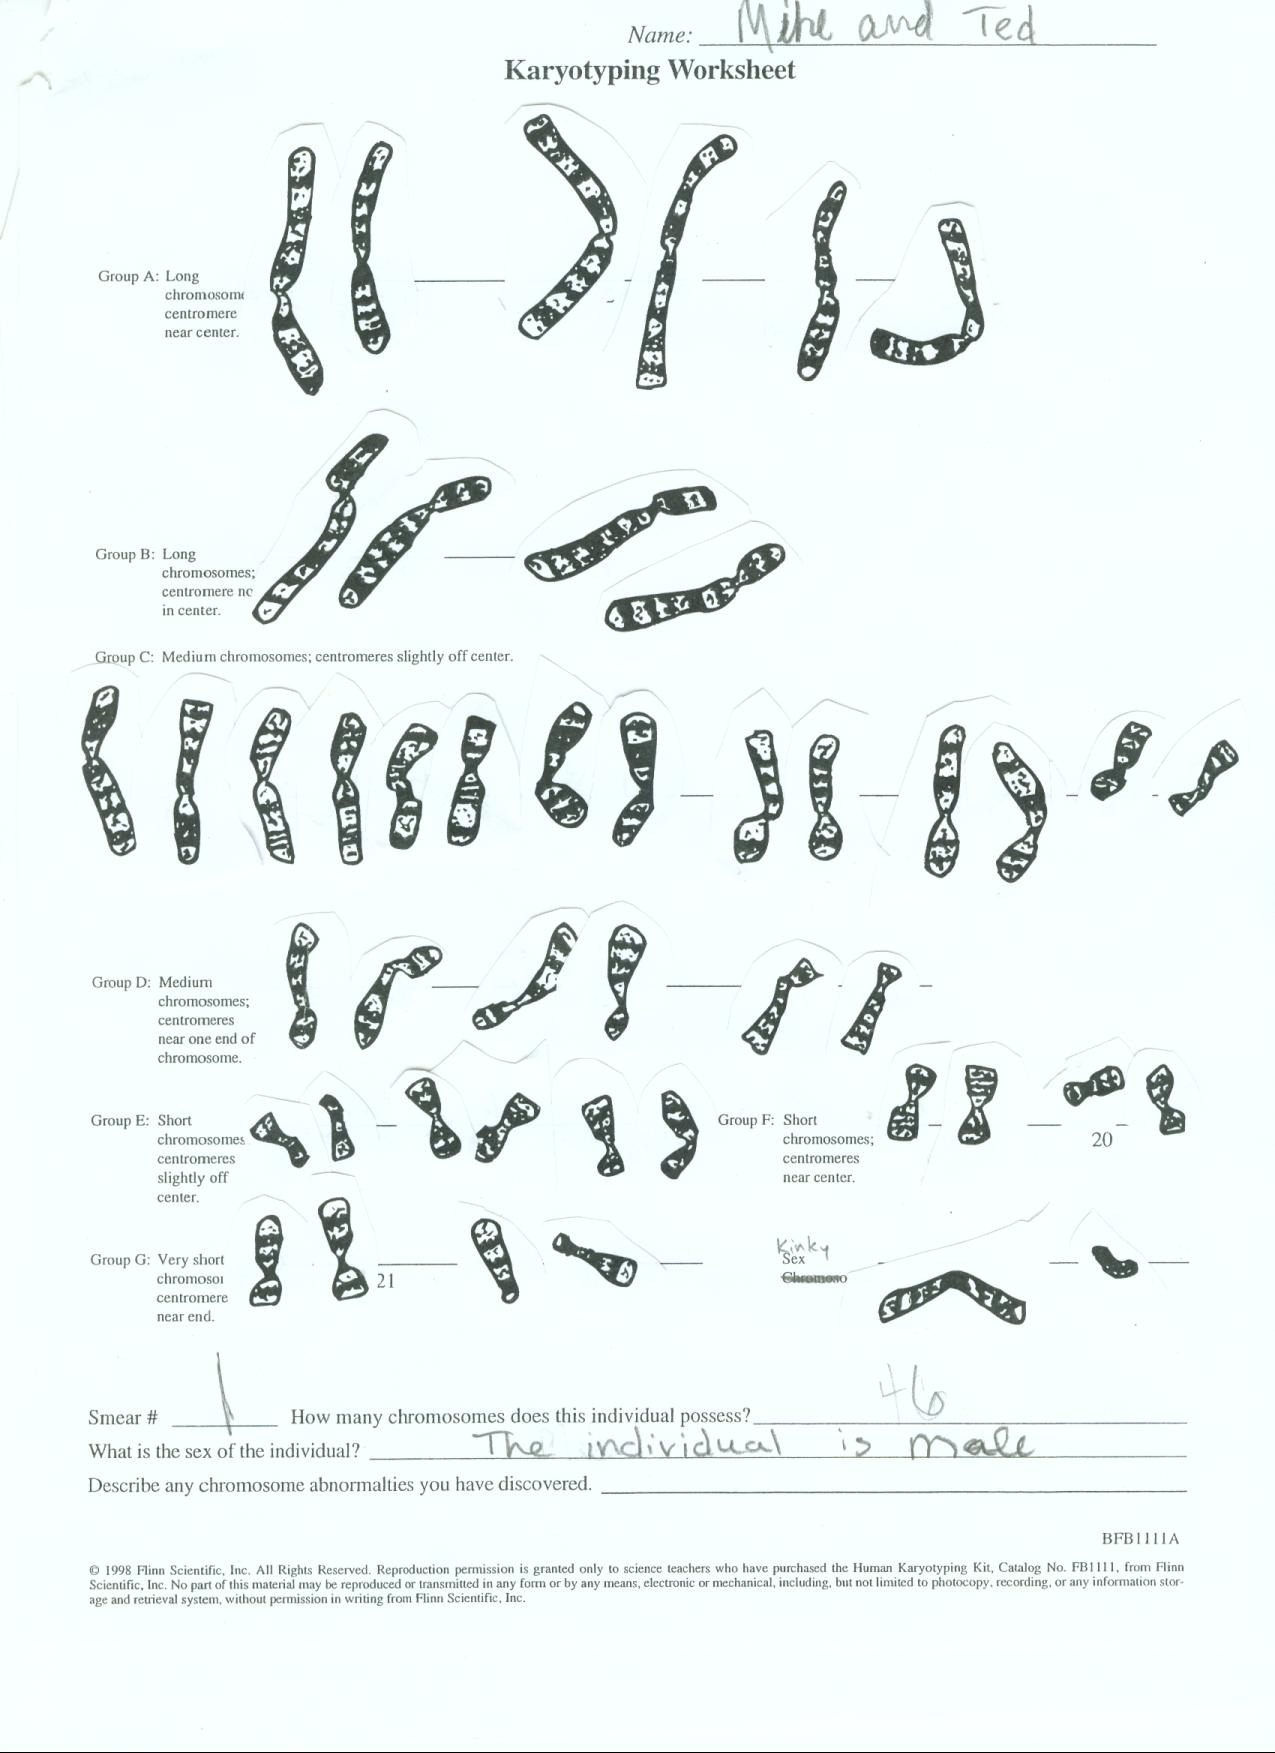 Worksheet Karyotyping Worksheet Grass Fedjp Worksheet